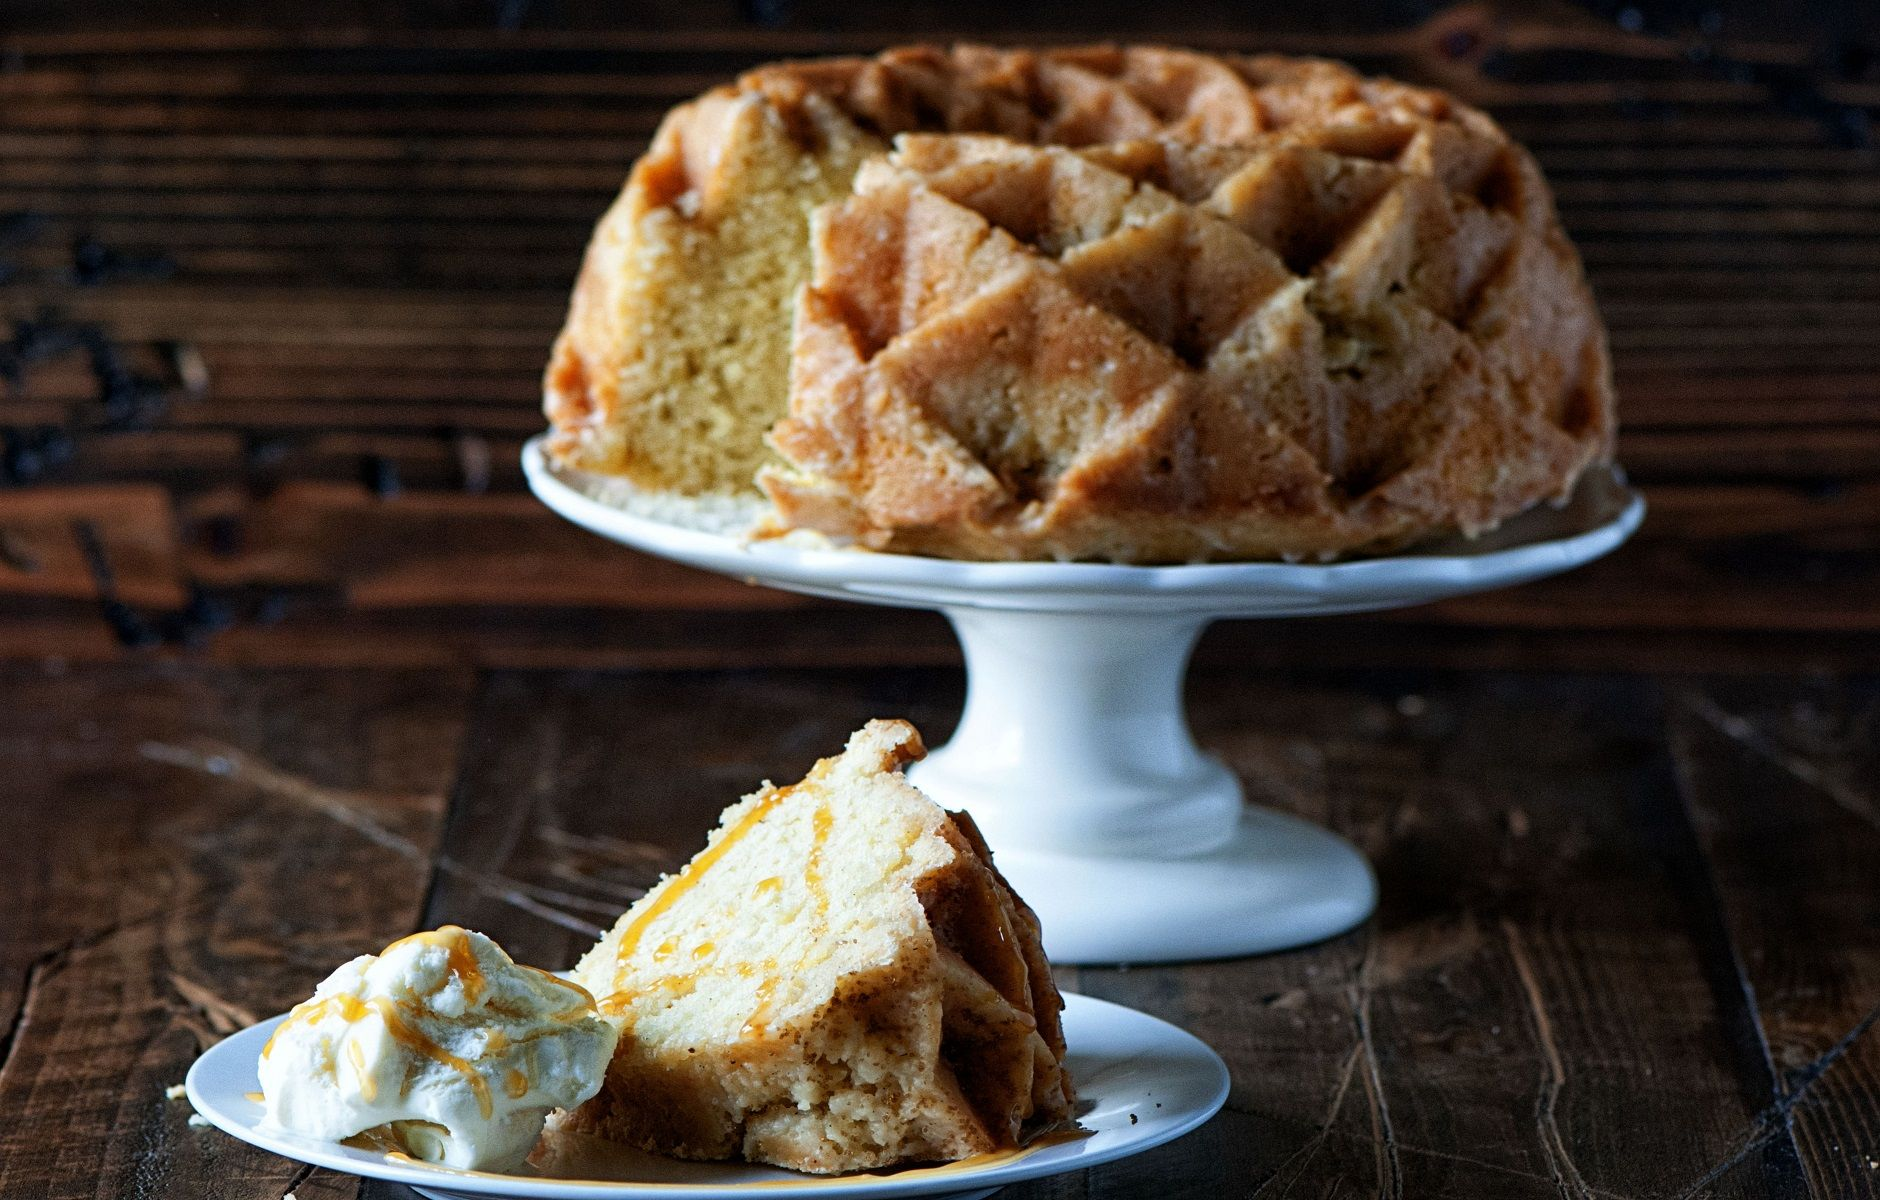 A Simple Vanilla Buttermilk Pound Cake Brushed With A Cognac Glaze And Sprinkled With Vanilla Bourbon Sugar Yo In 2020 Baking Recipes Buttermilk Pound Cake Pound Cake